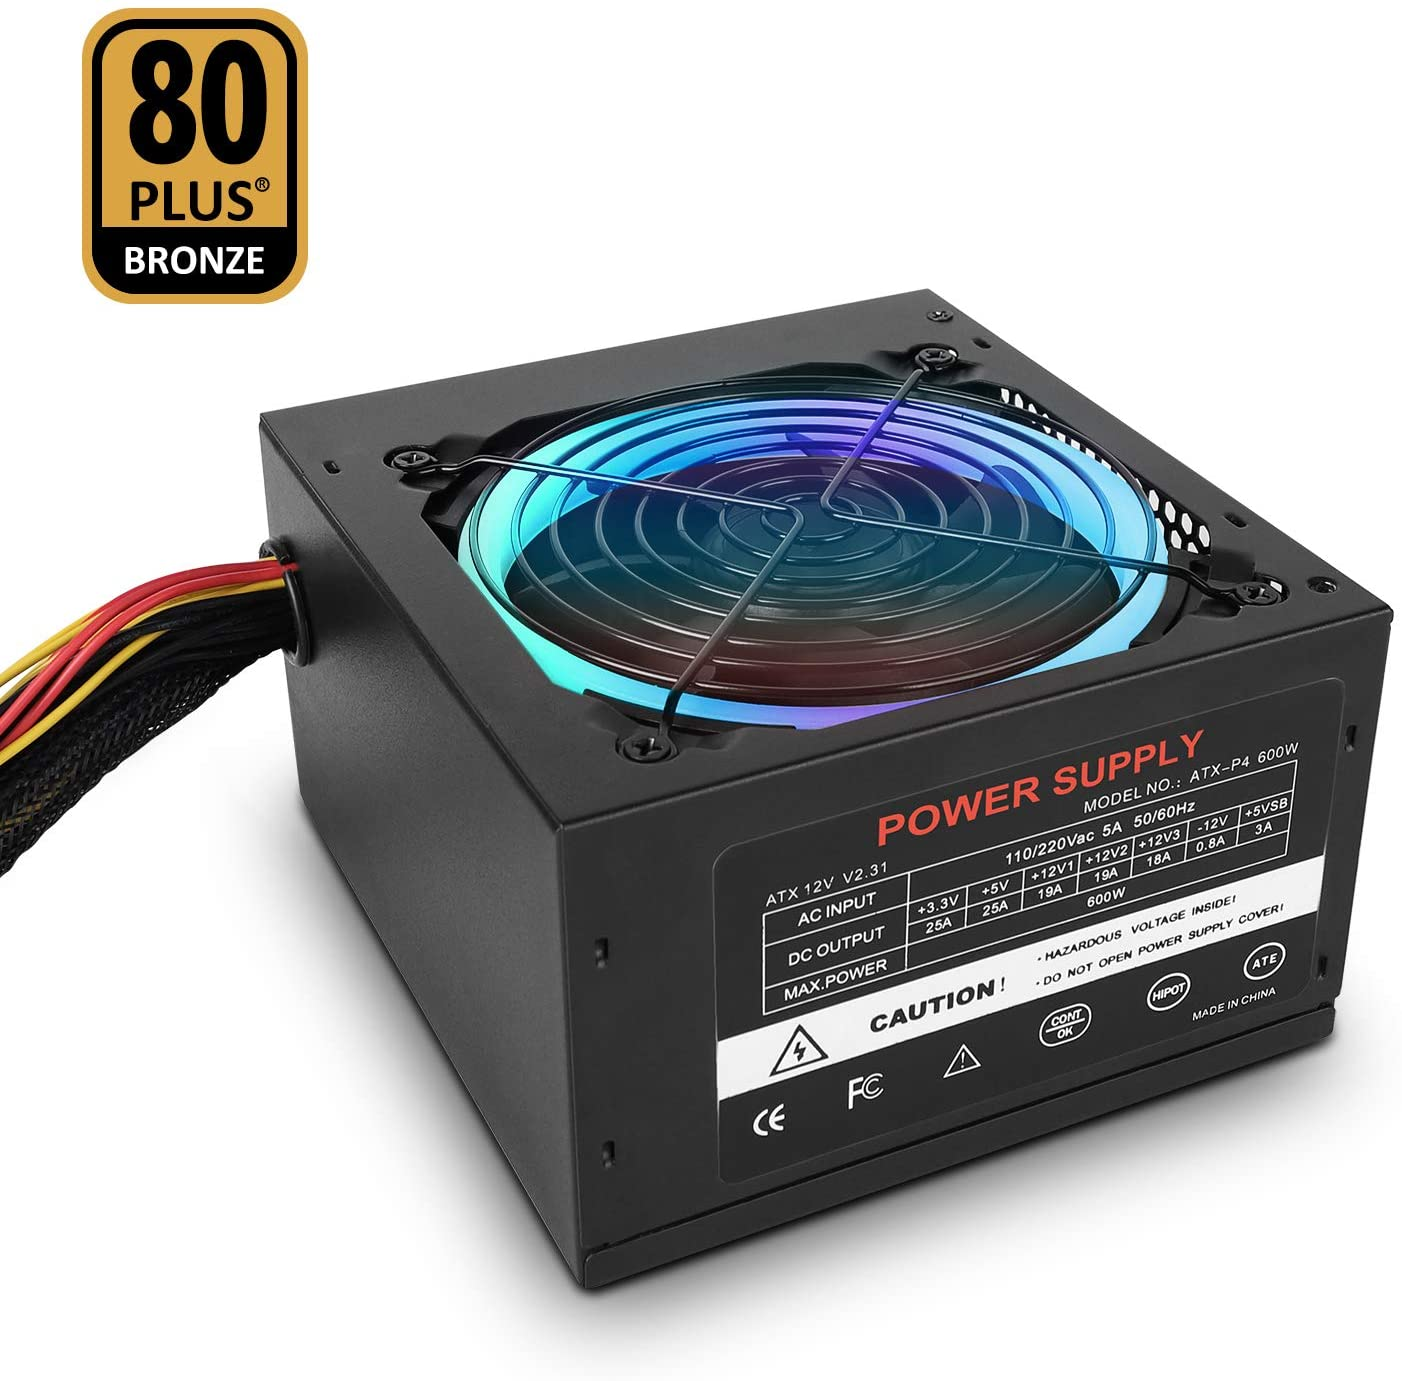 Studio 21 Graphix PC Power Supply 600W, ATX Power Supply 80+ Bronze Certified with RGB Light, Continuous Power with 120mm Ultra Quiet Cooling Fan